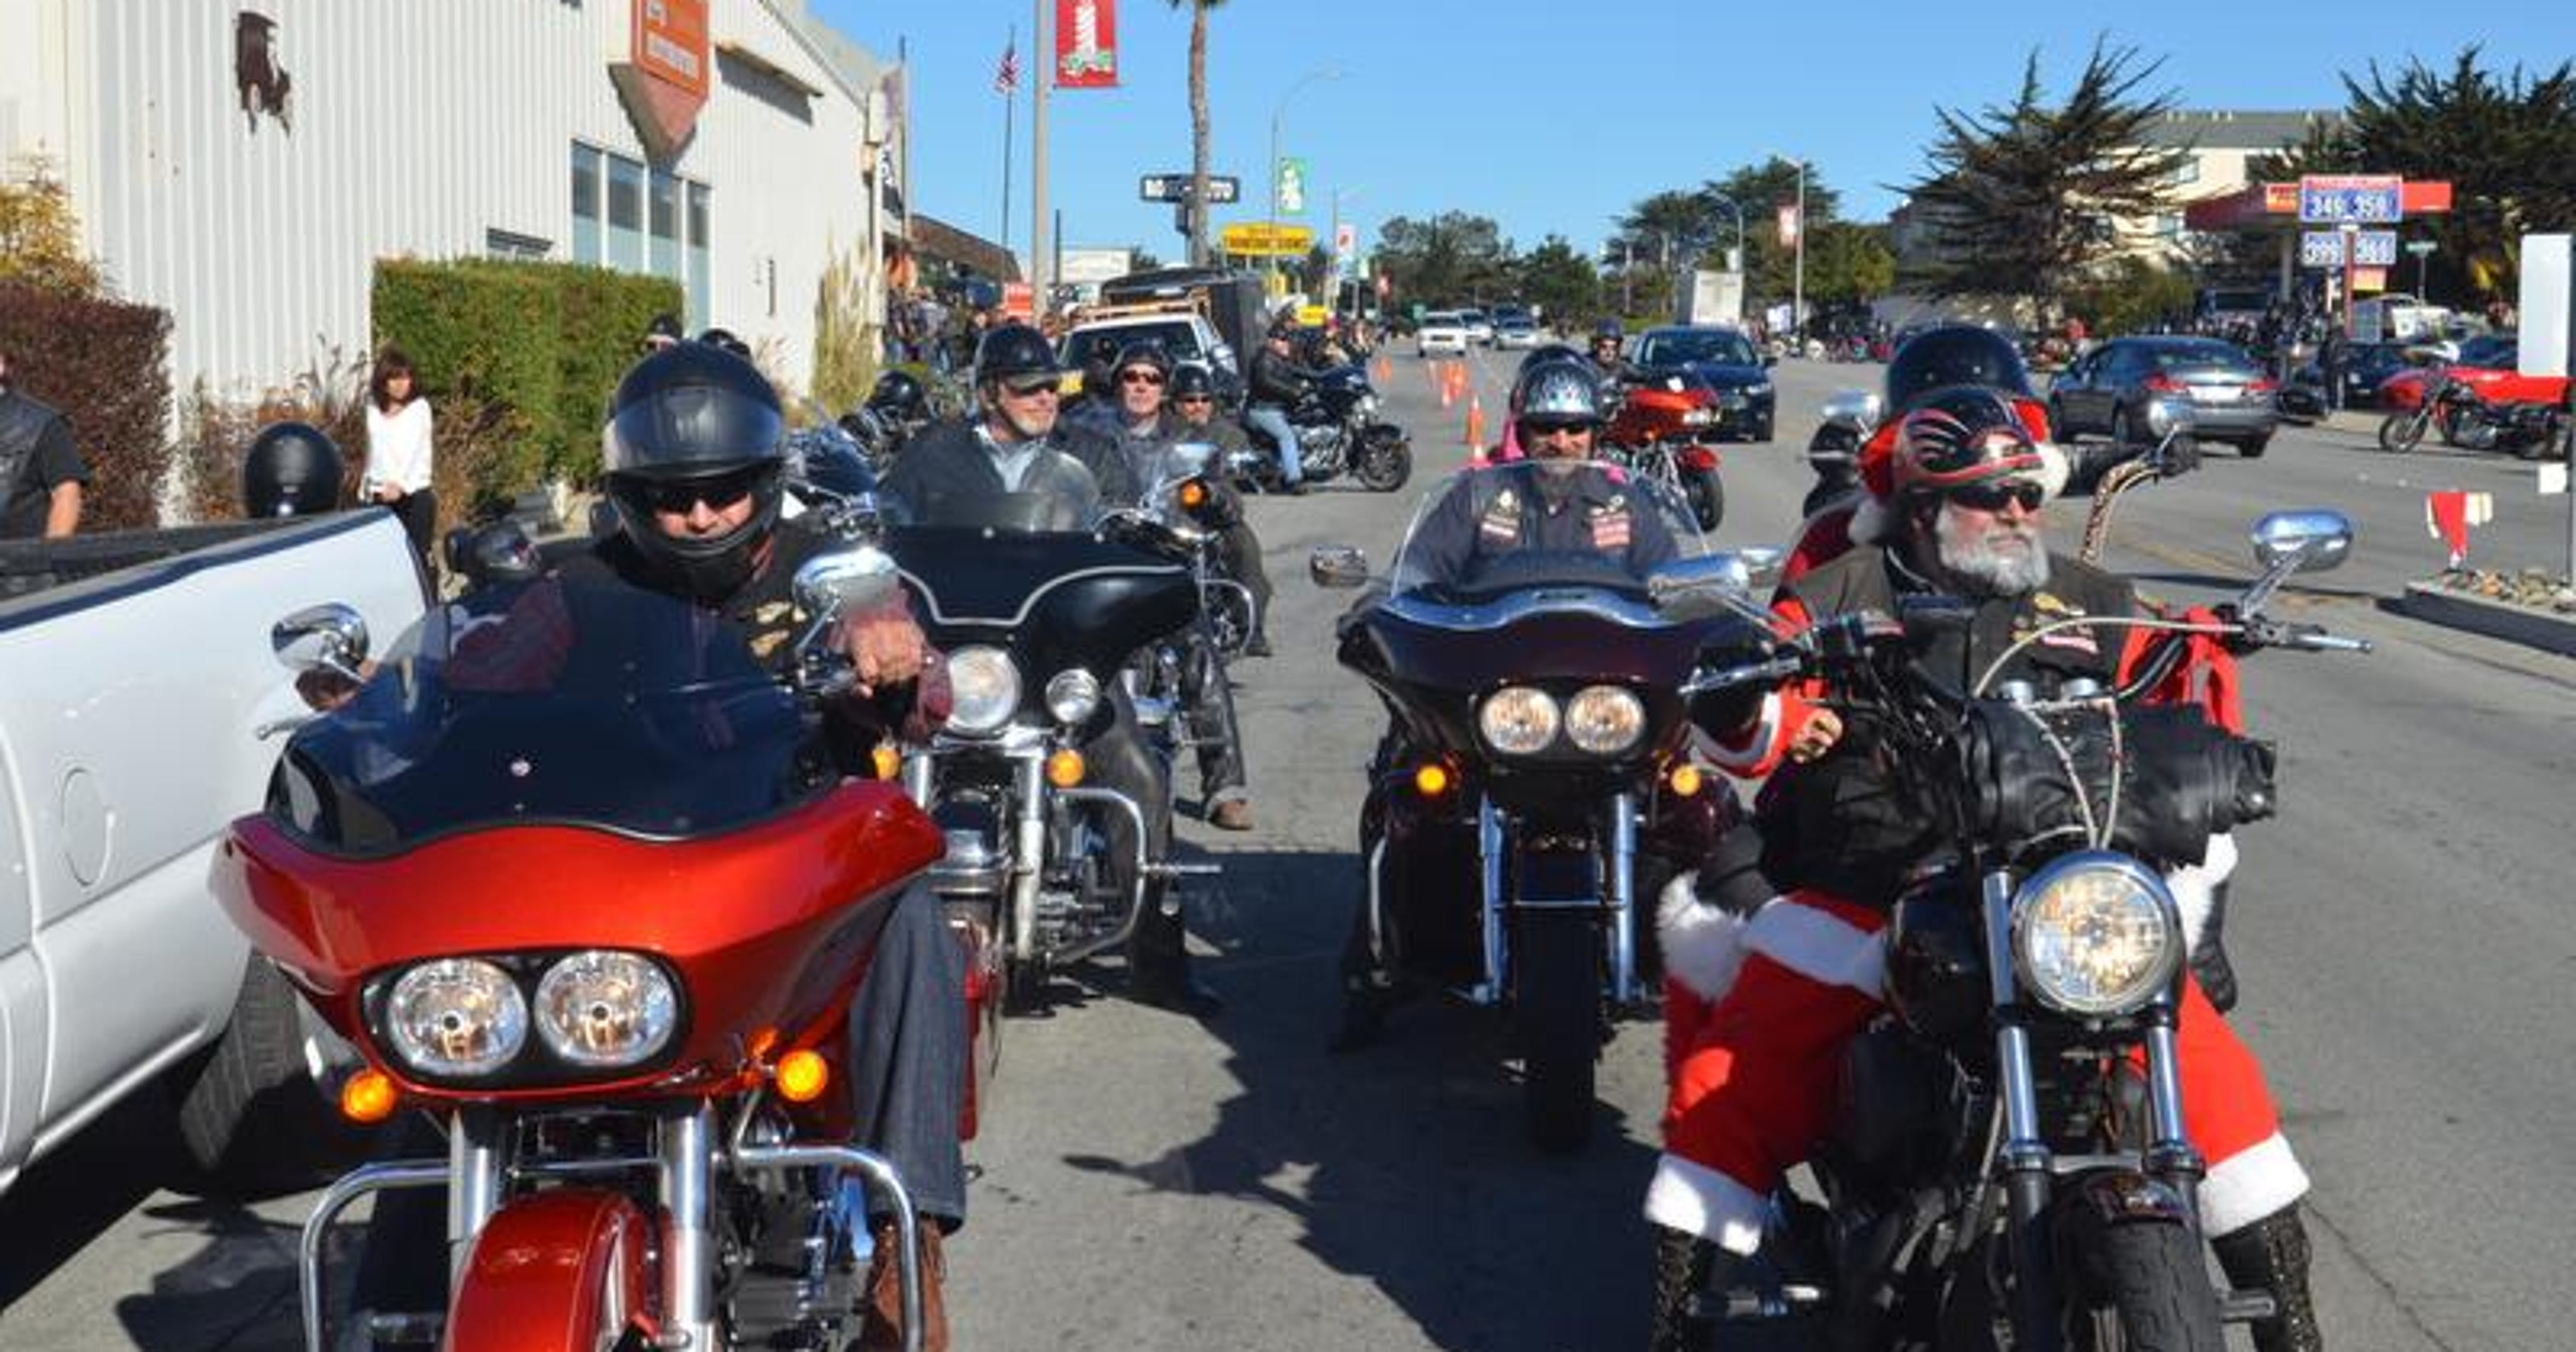 Hell's Angels holds its annual toy run